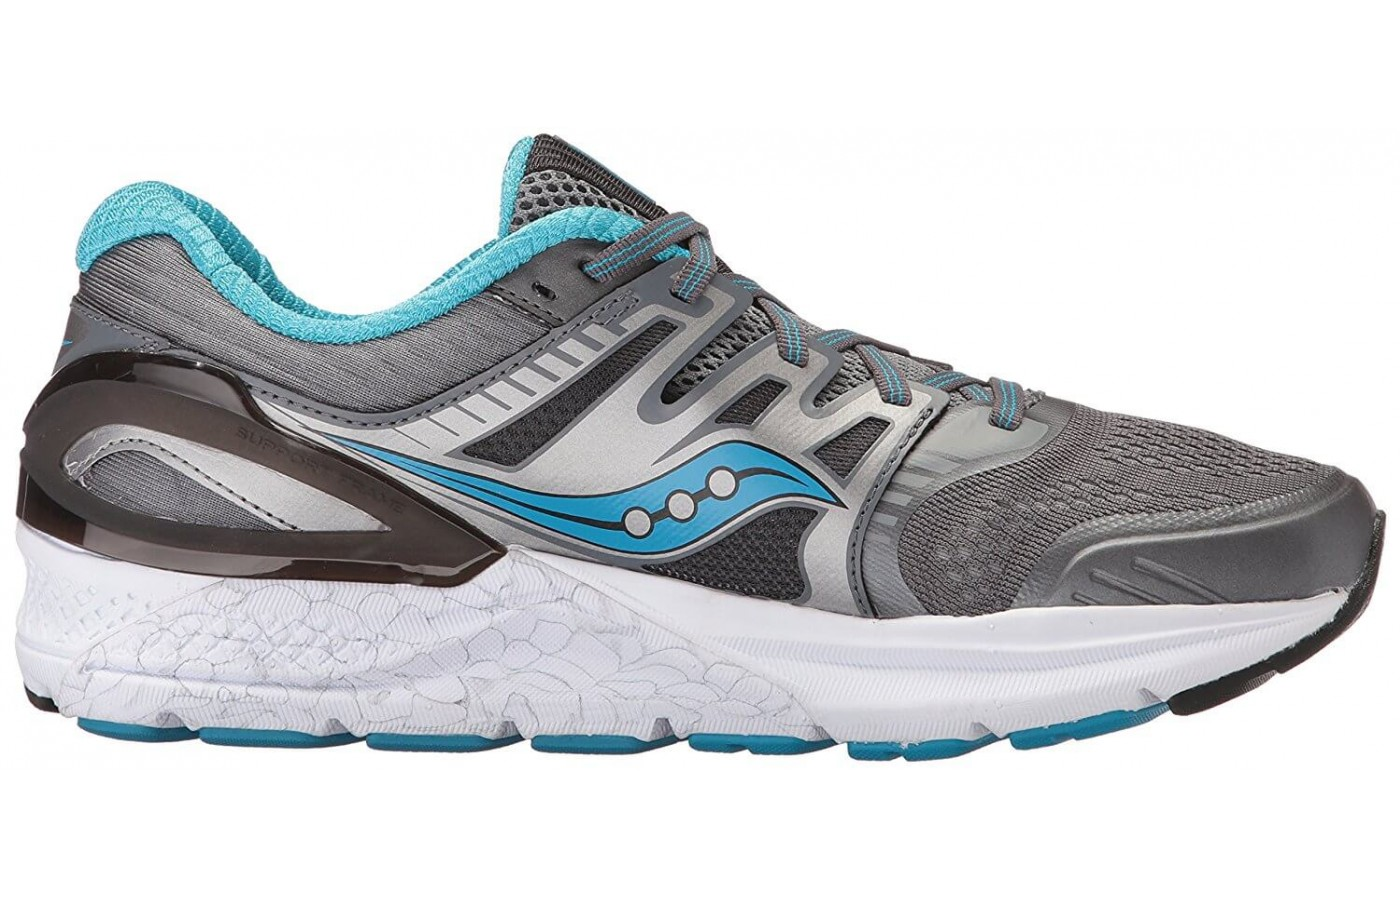 The Saucony Redeemer ISO 2 features ISOFIT technology